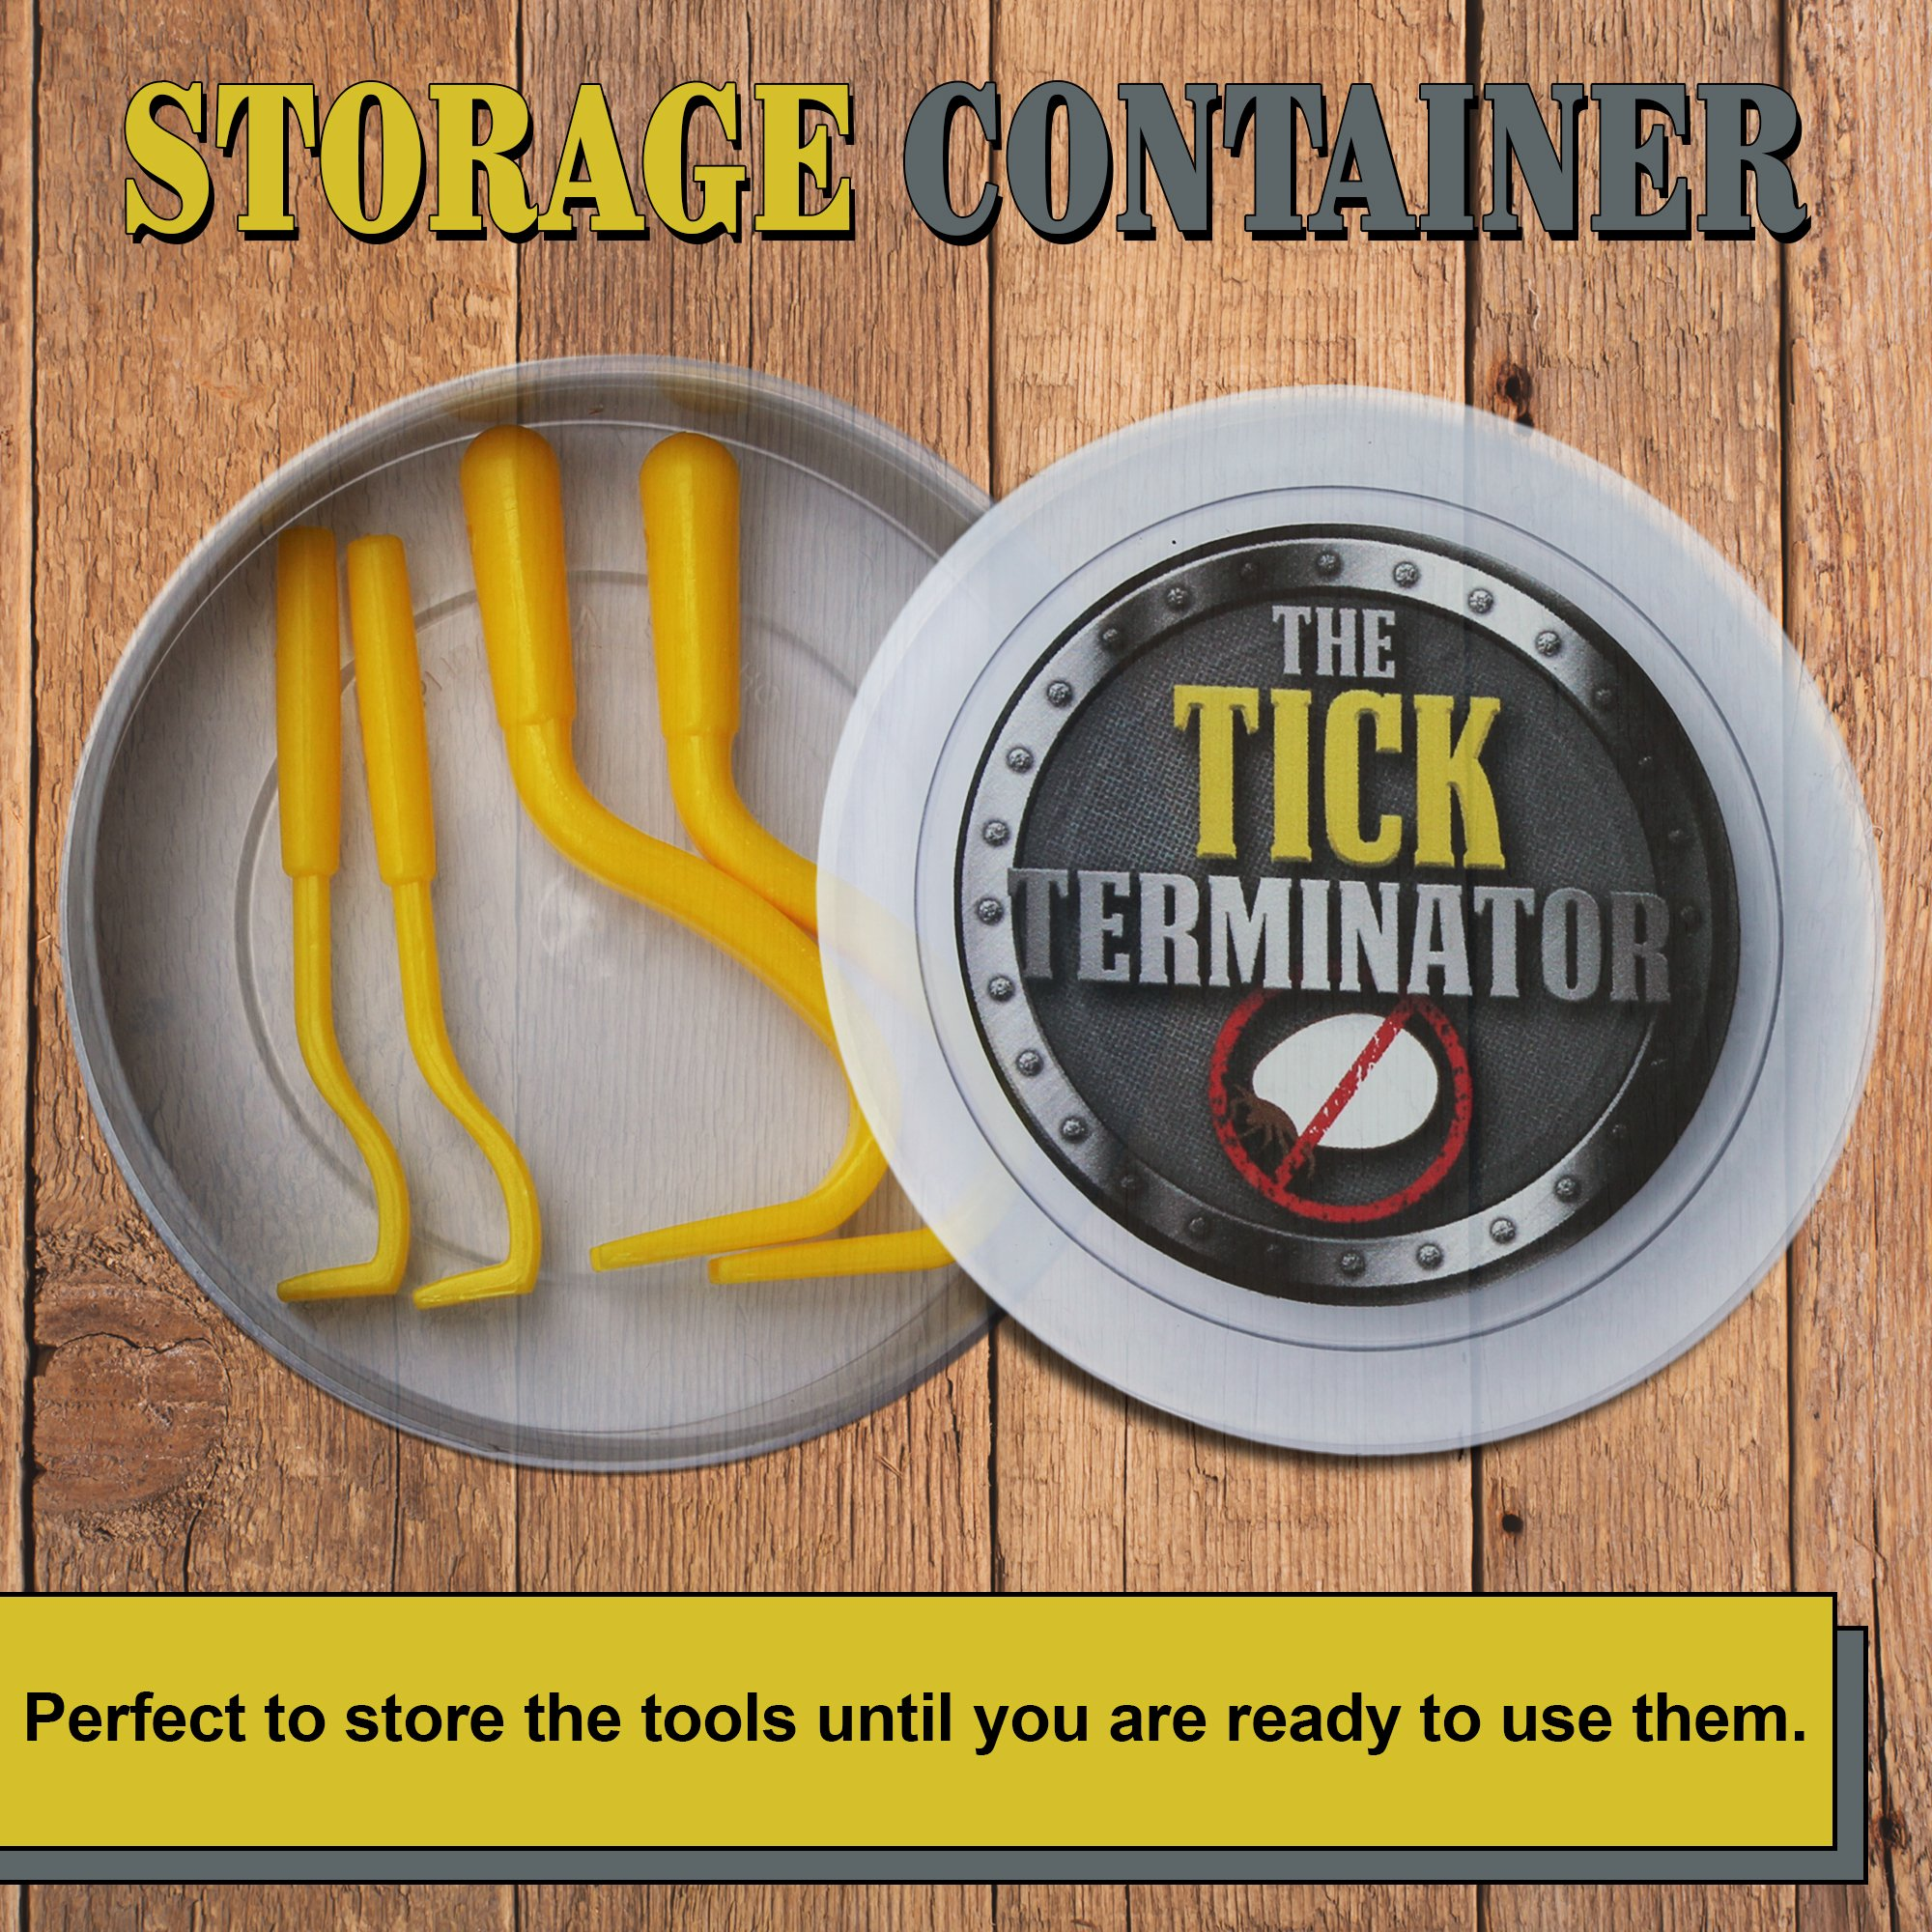 PRODUCT80 4 Complete Sets of Tick Terminator Remover Hooks with Storage Container, Removes The Whole Tick Safely Using a Large or Small Twisting Tools by PRODUCT80